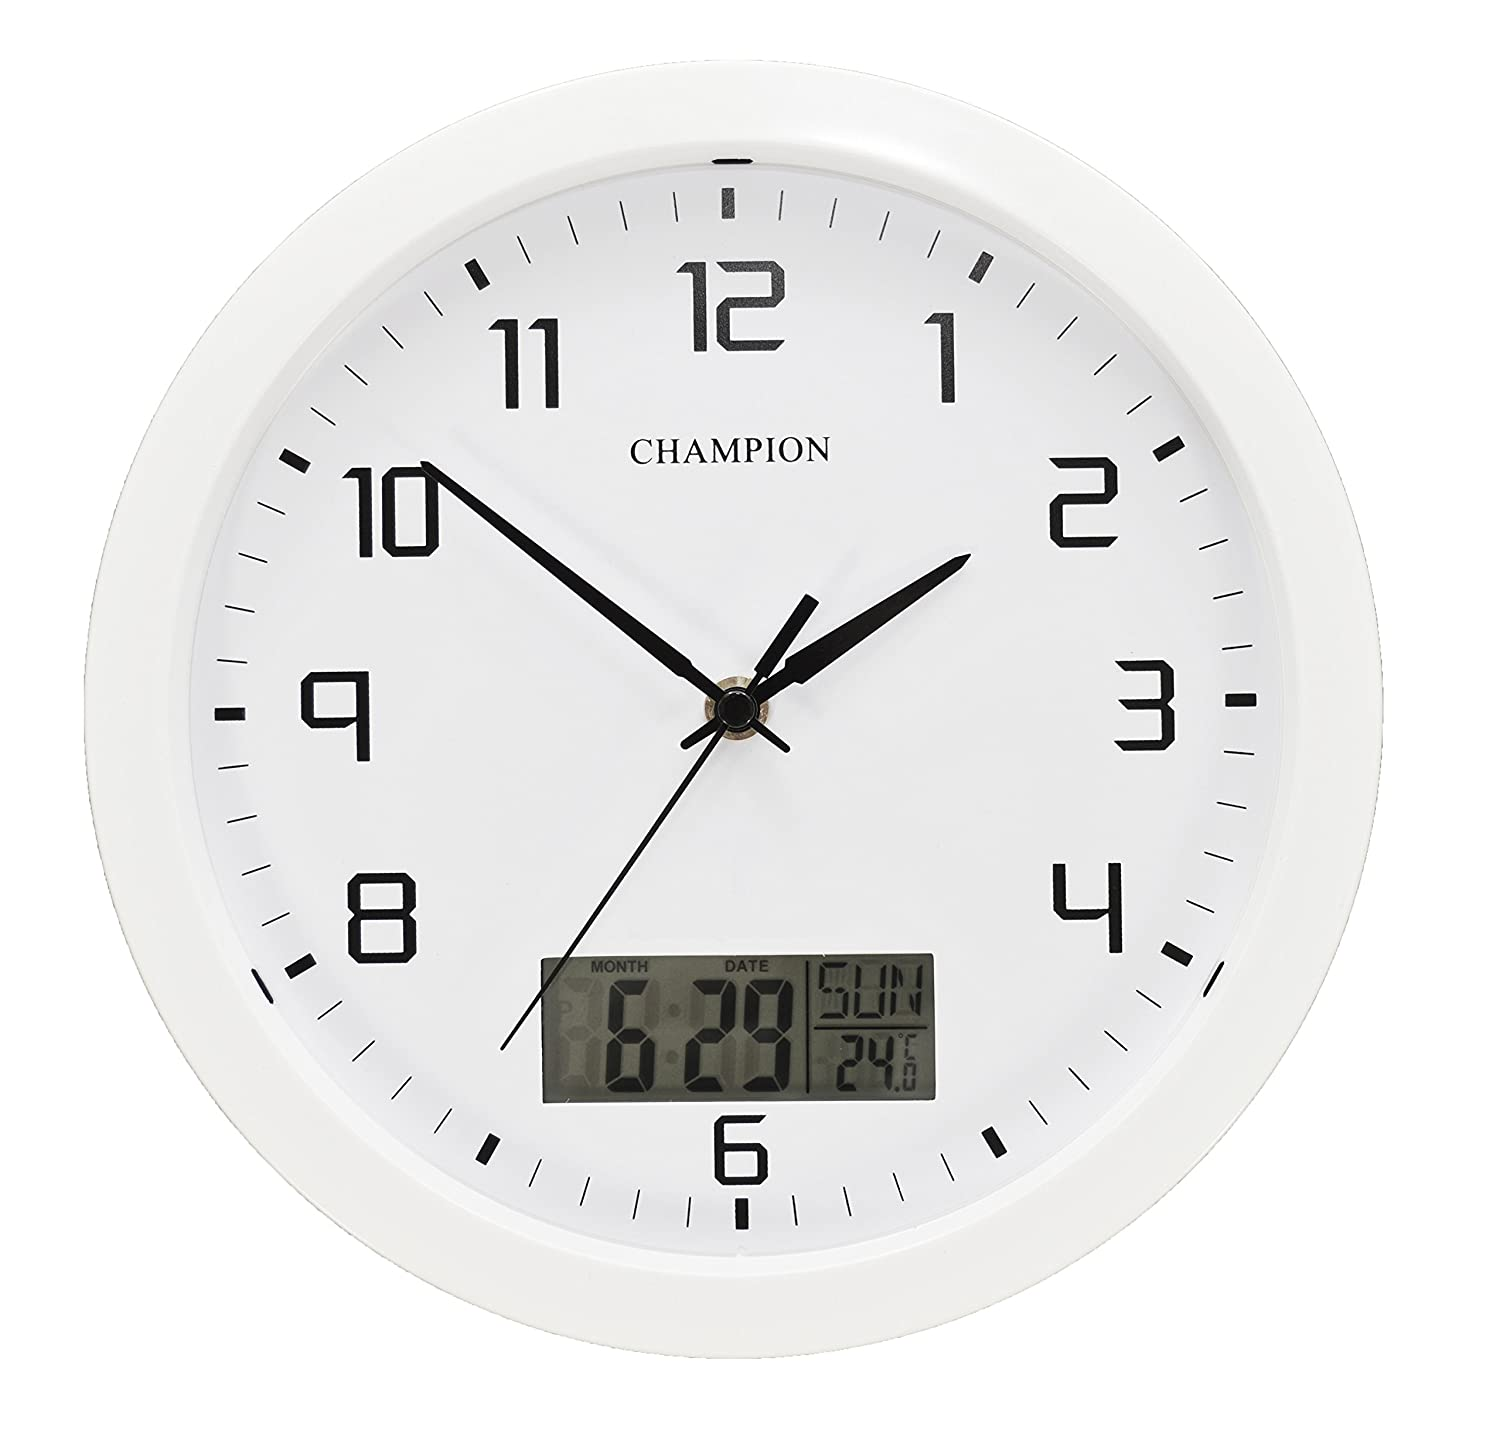 Champion 25cm quartz wall clock with inset lcd display with day champion 25cm quartz wall clock with inset lcd display with daydate white amazon kitchen home amipublicfo Images